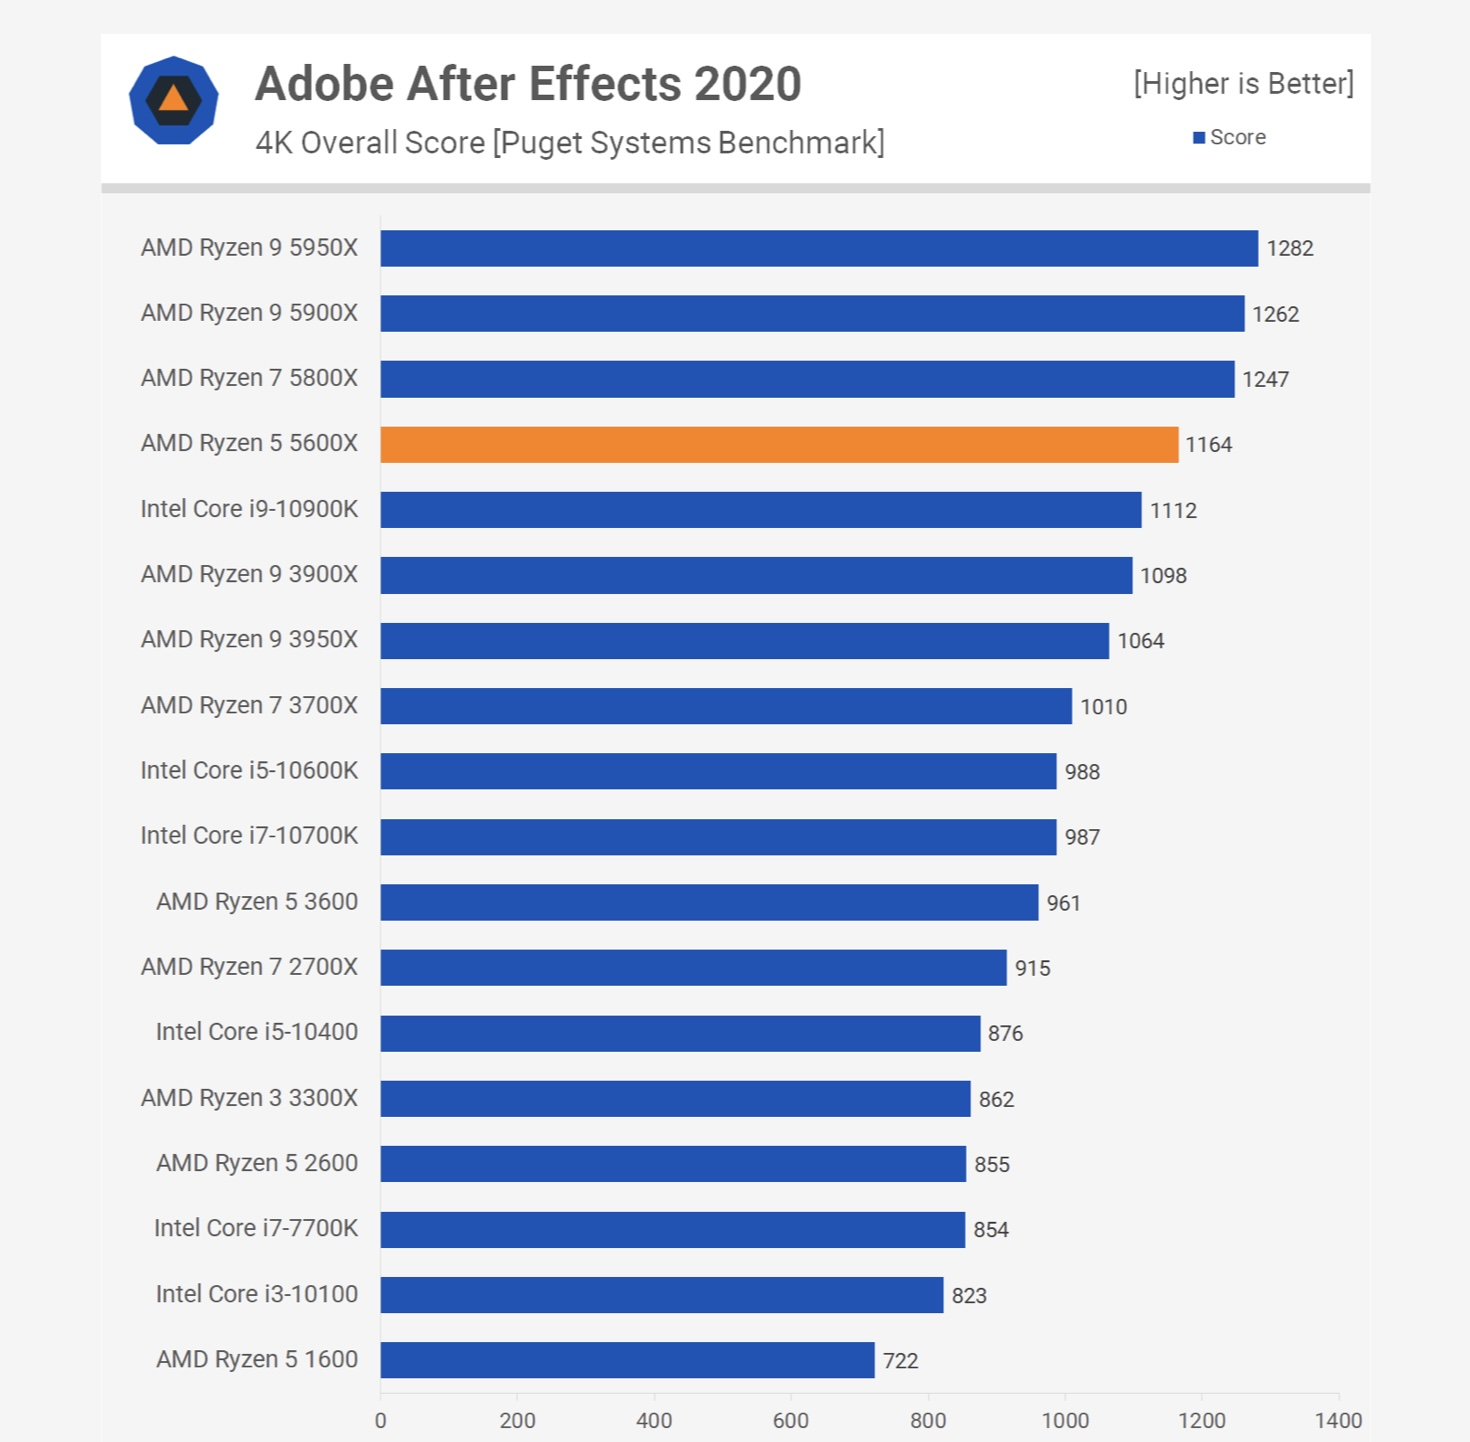 Adobe After Effects Average All Processors - Source - techspot.com